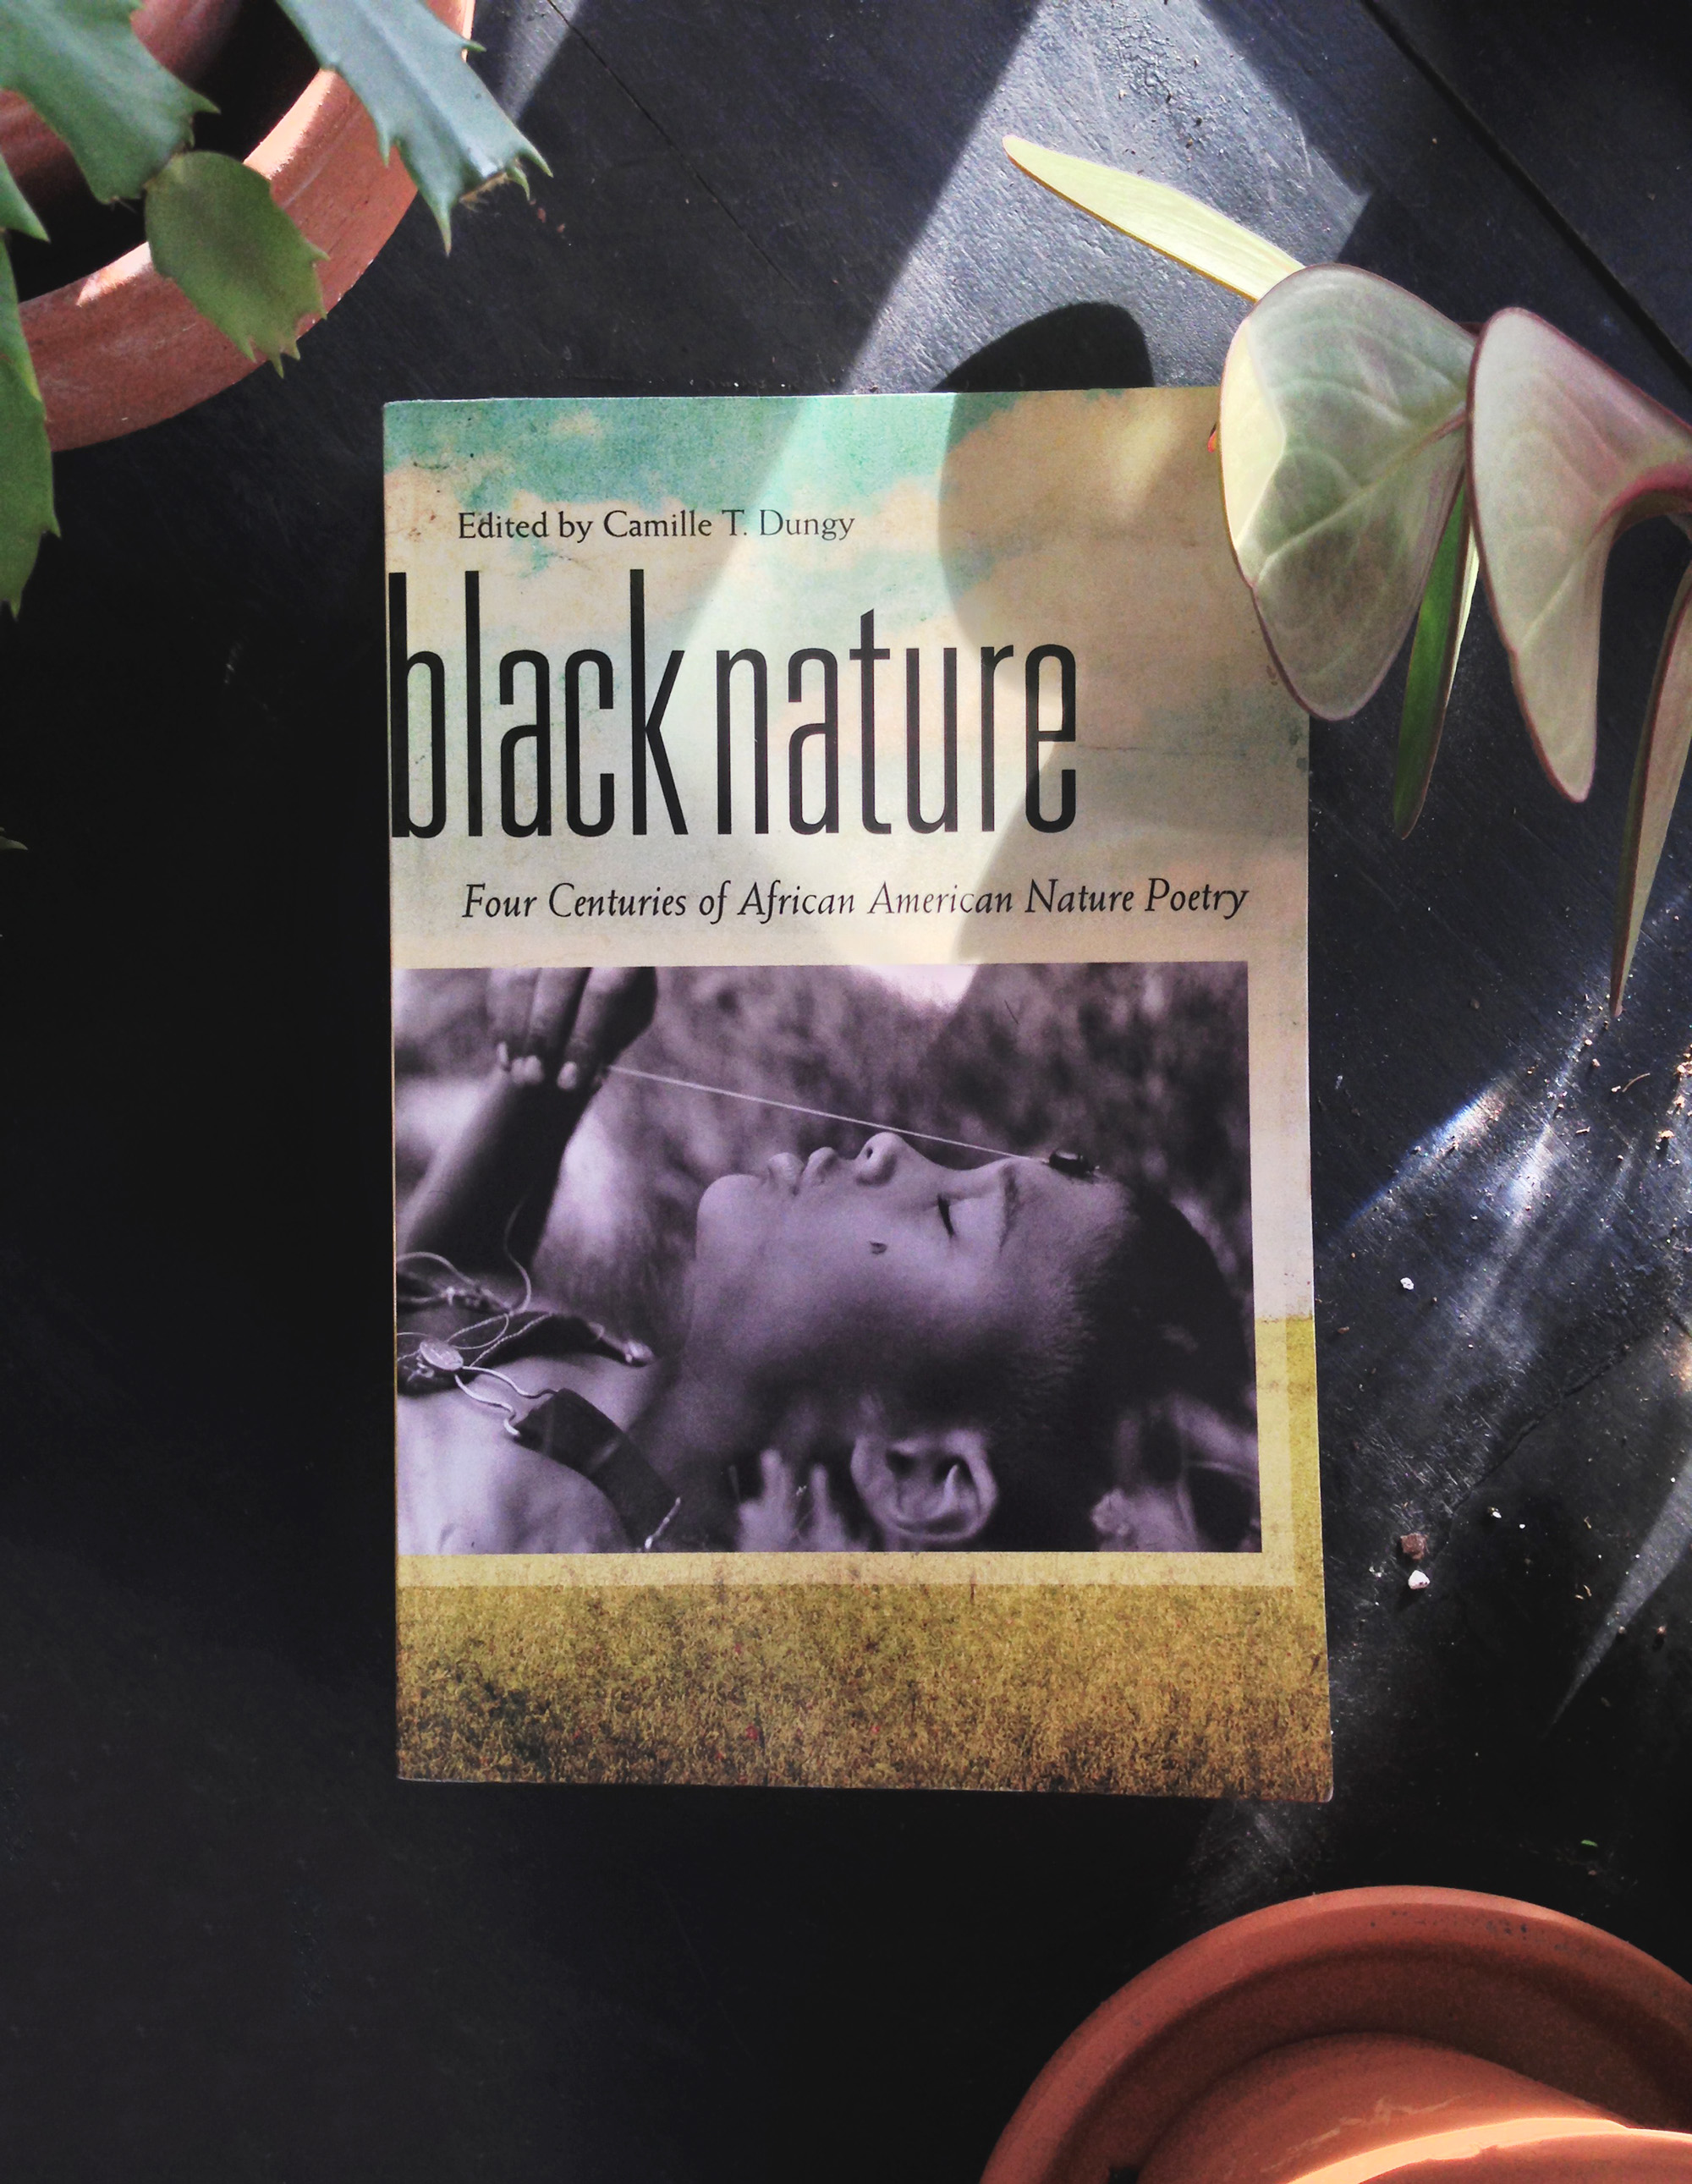 Black Nature: Four Centuries of African American Nature Poetry, Edited by Camille T. Dungy